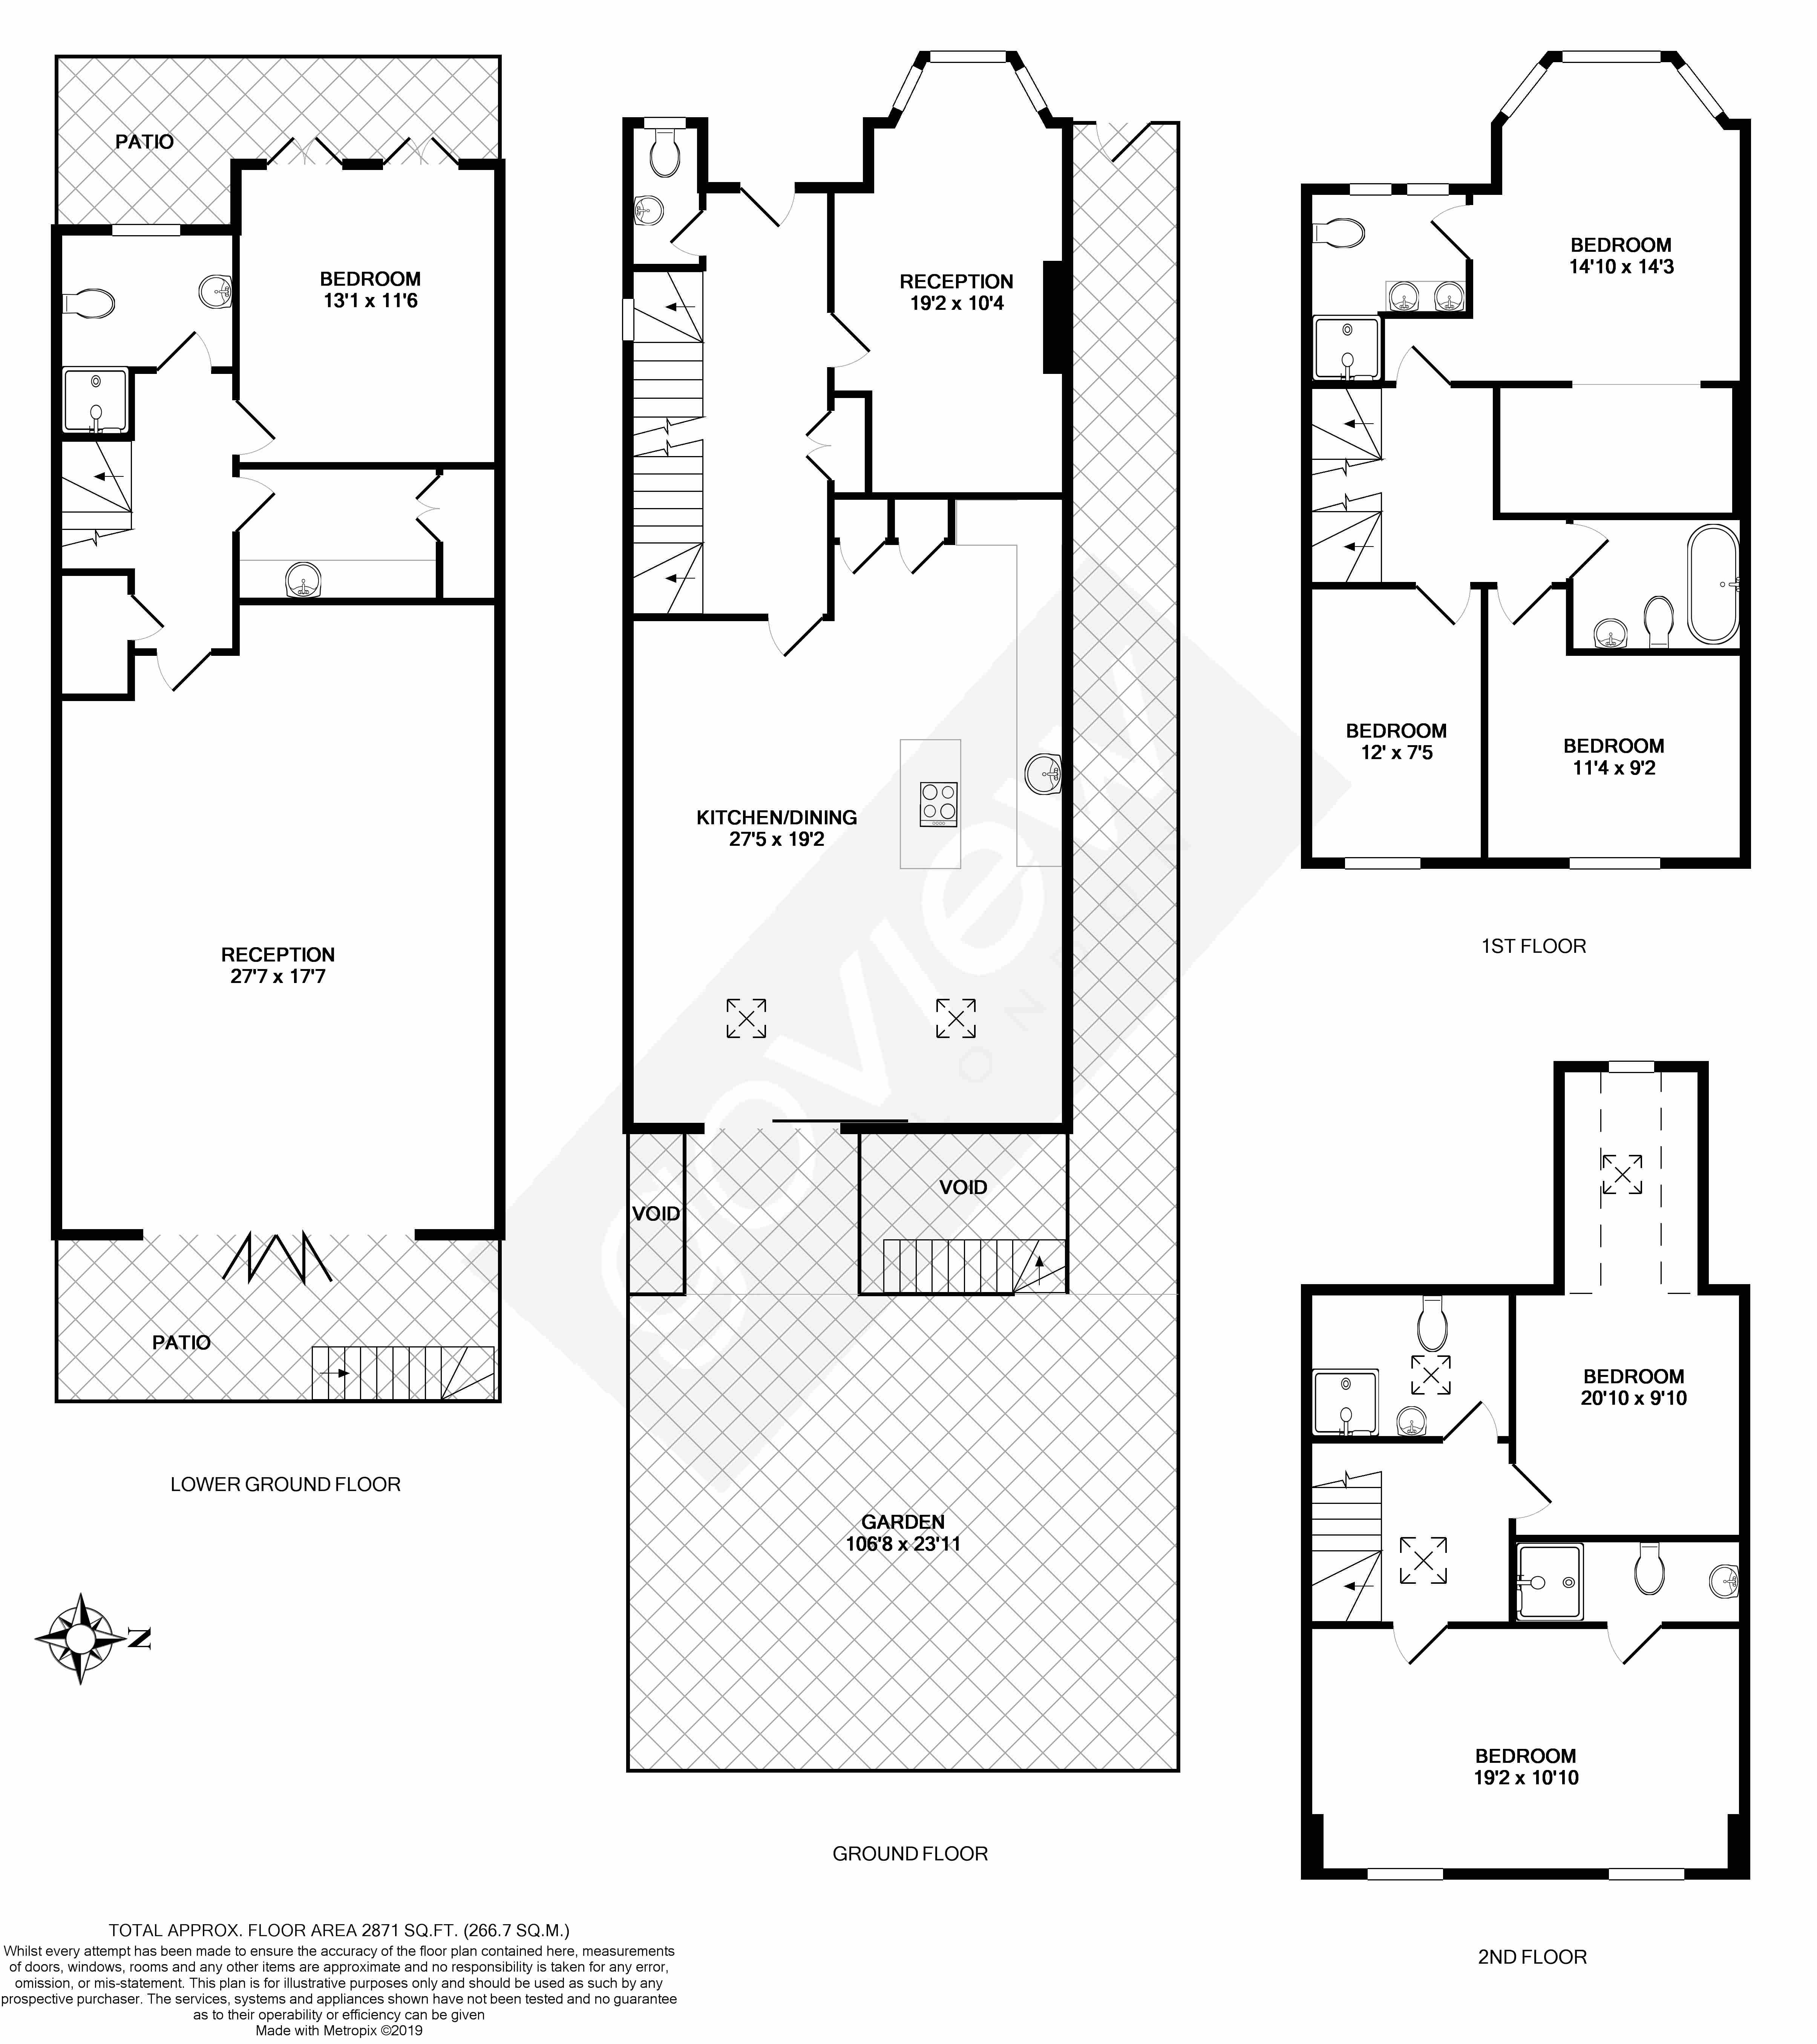 Floorplans For Ascott Ave, W5